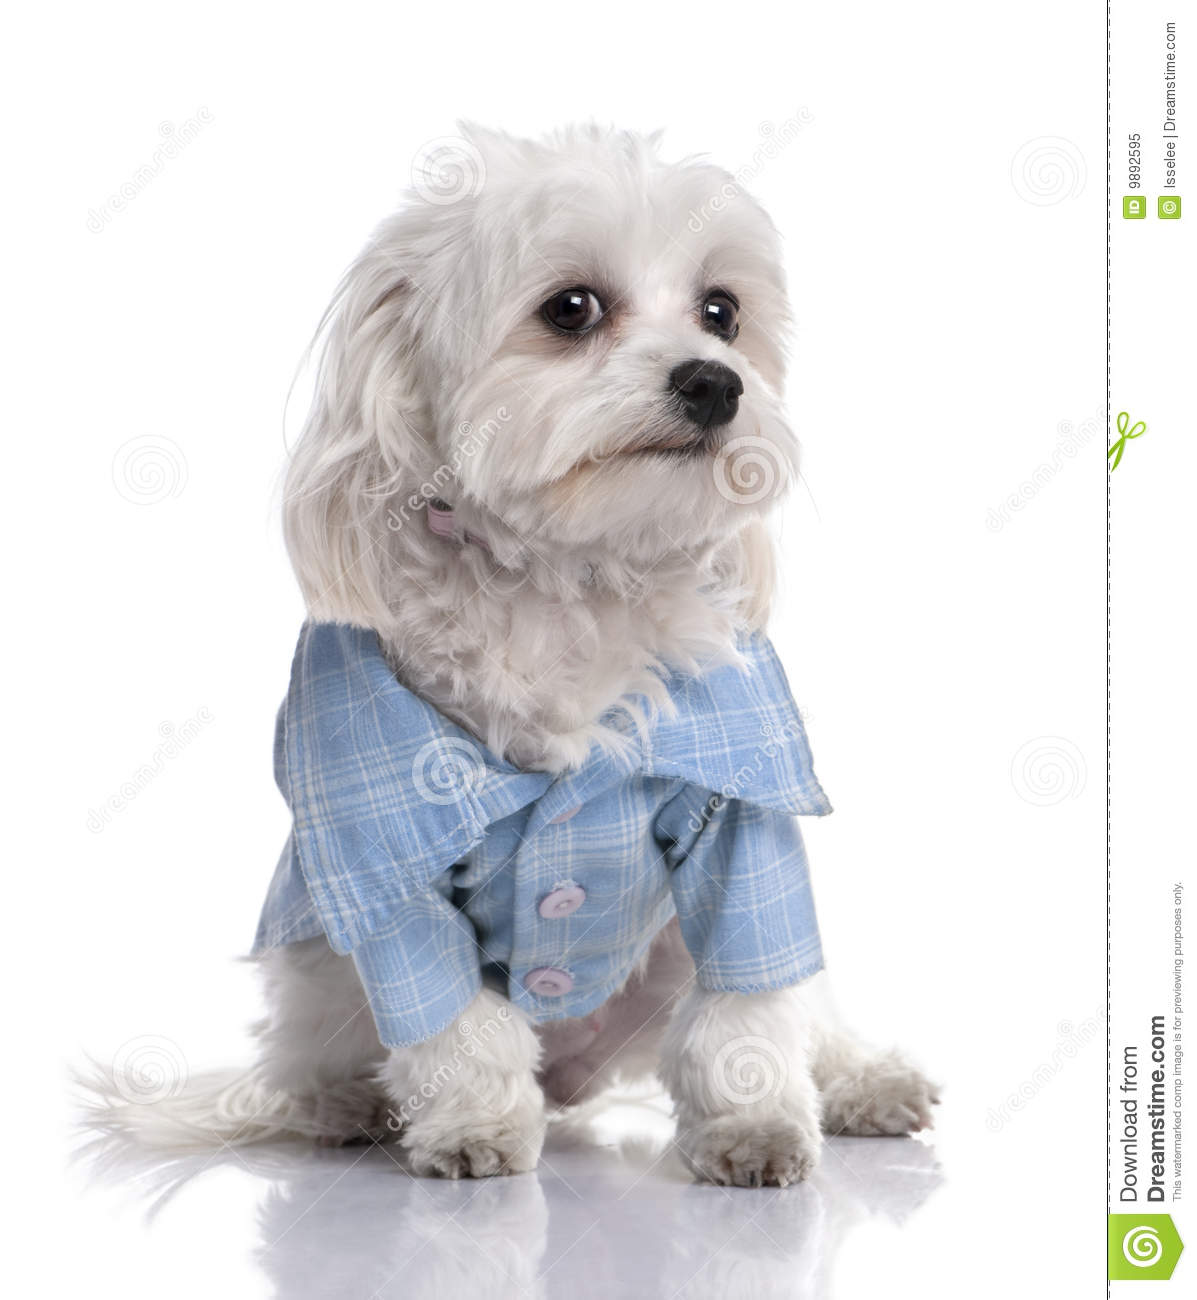 Maltese Dog Dressed Up With A Shirt 17 Months Old Royalty